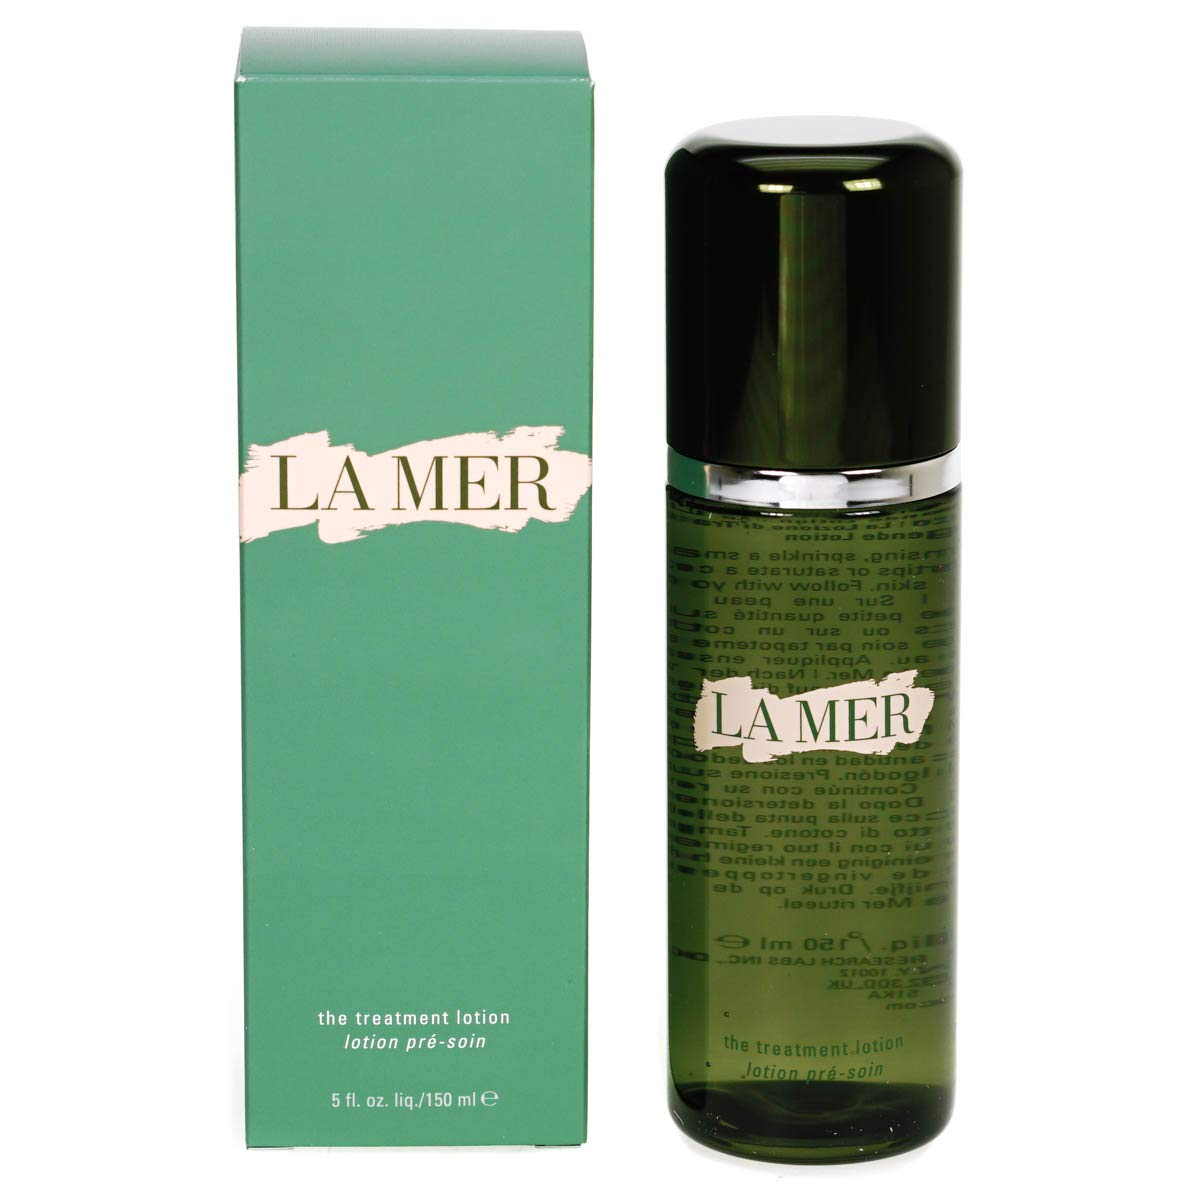 La Mer The Treatment Lotion noční péče 150 ml